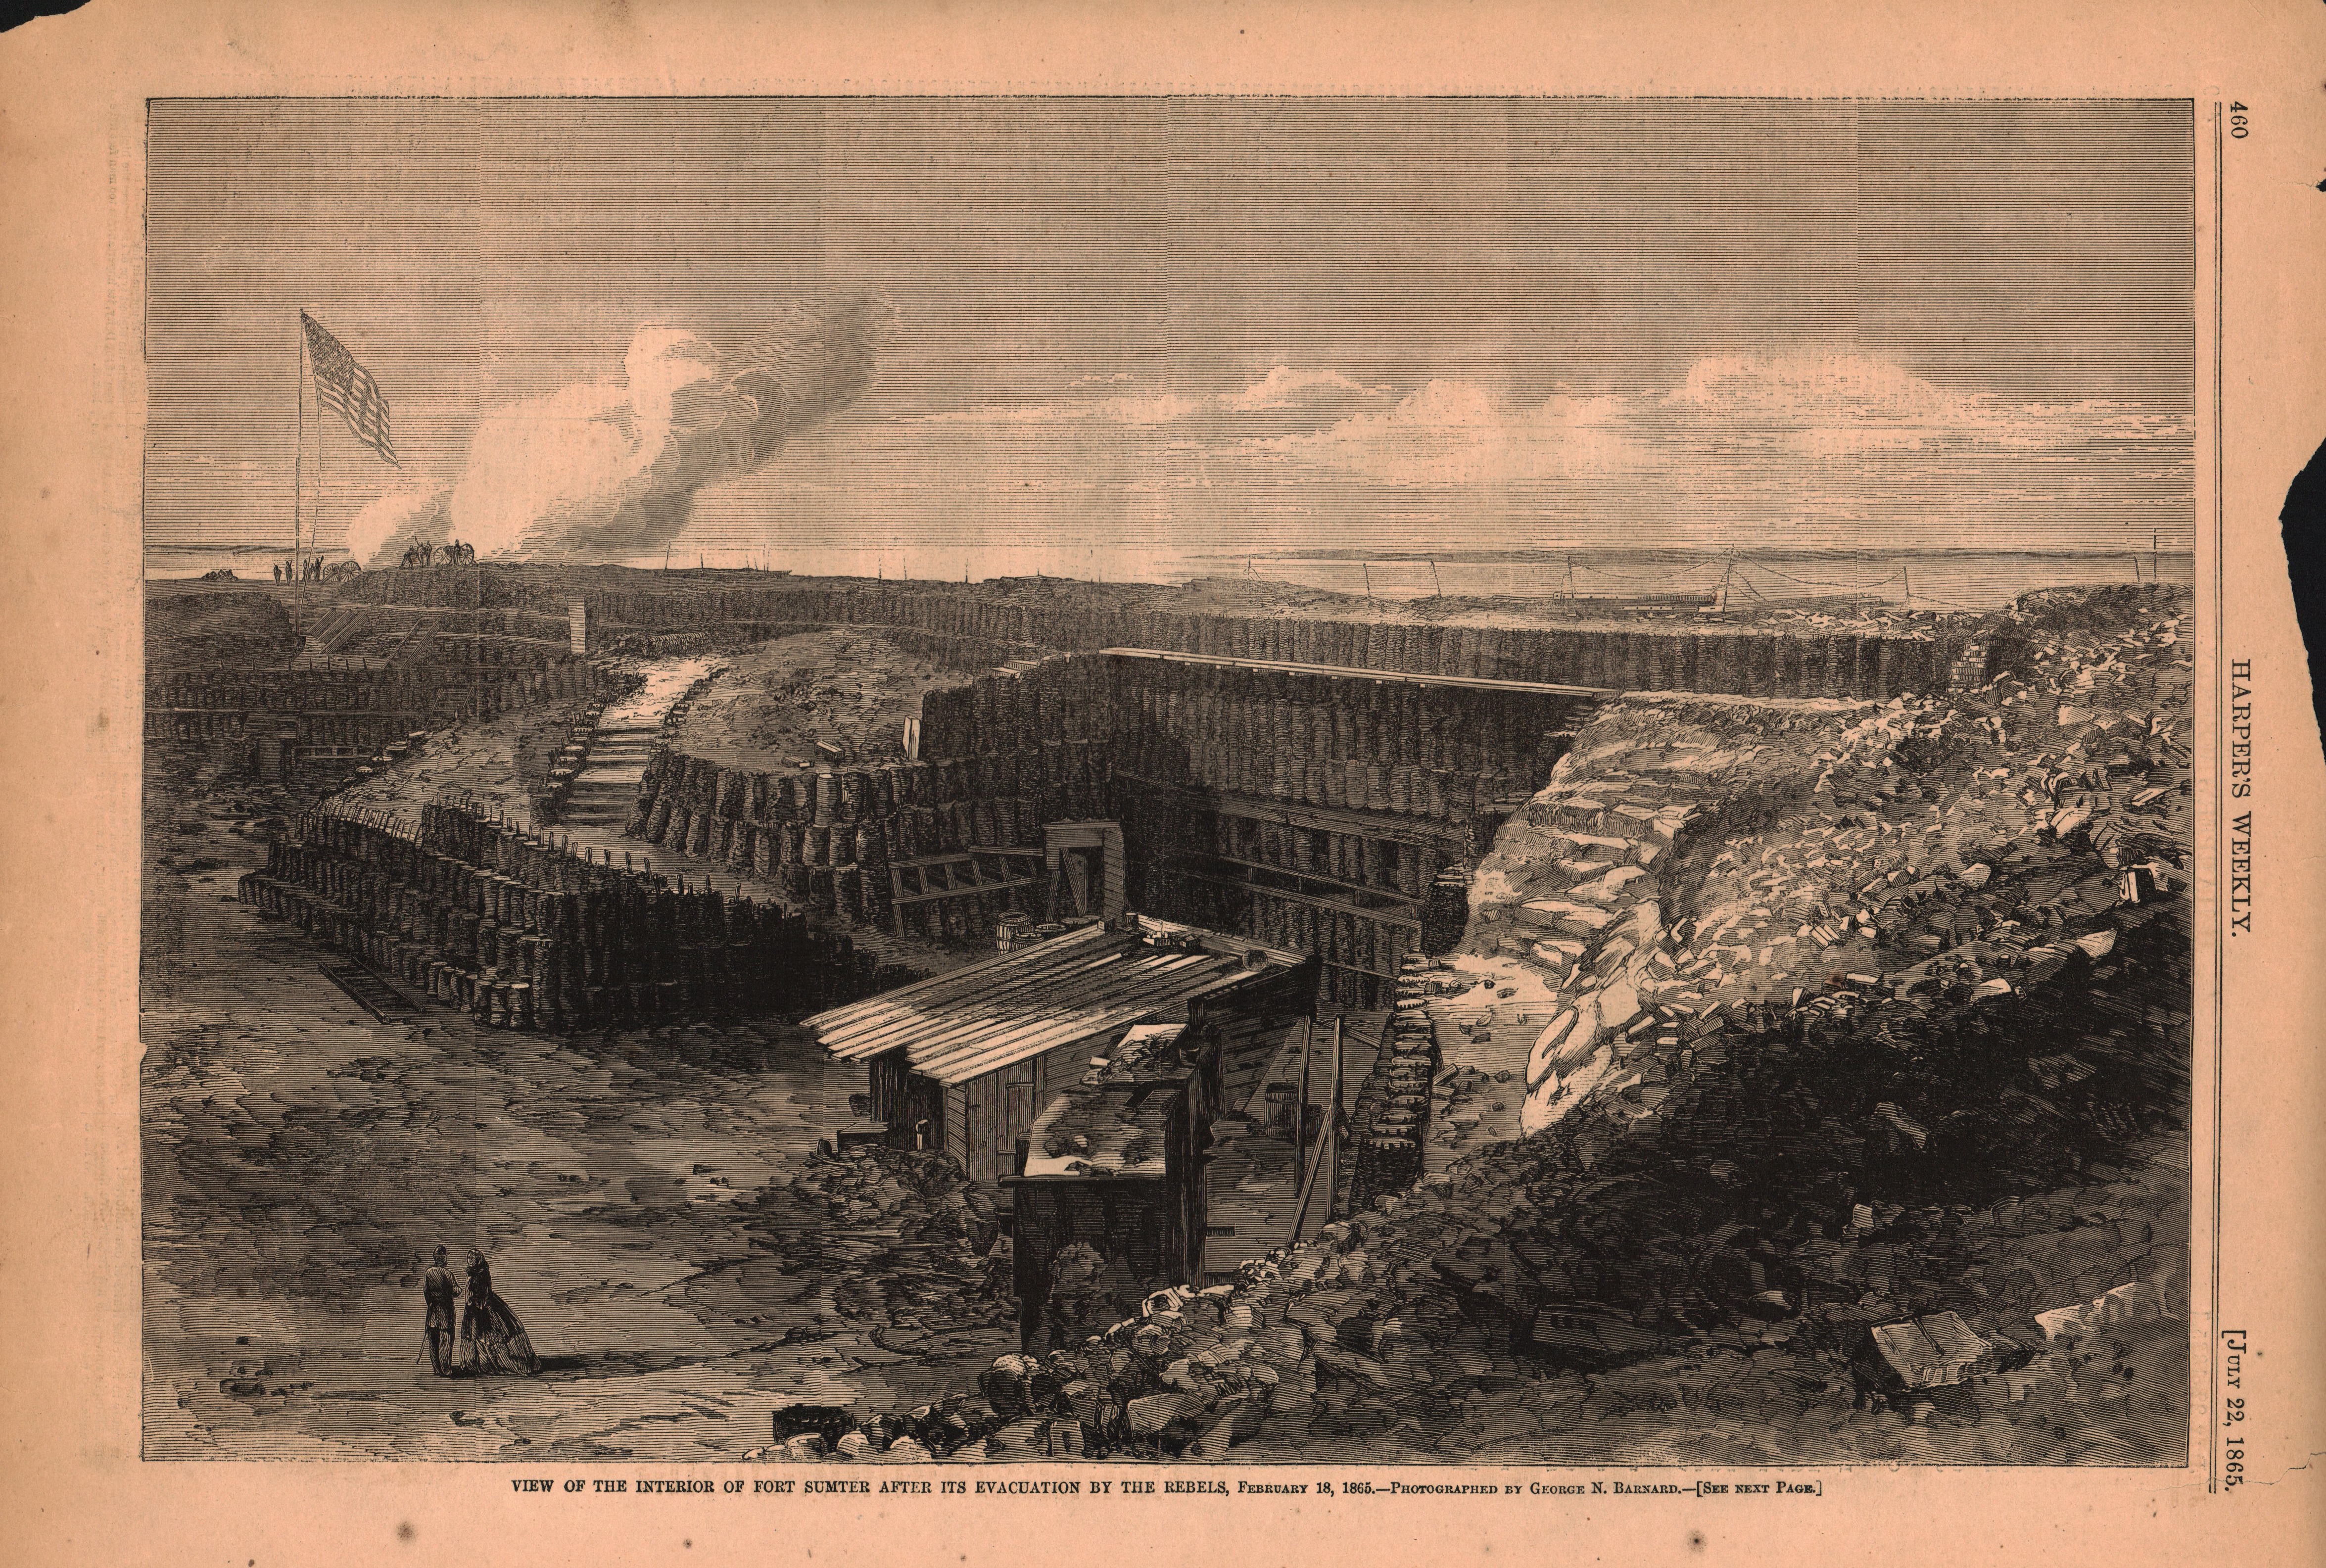 View of the interior of Fort Sumter